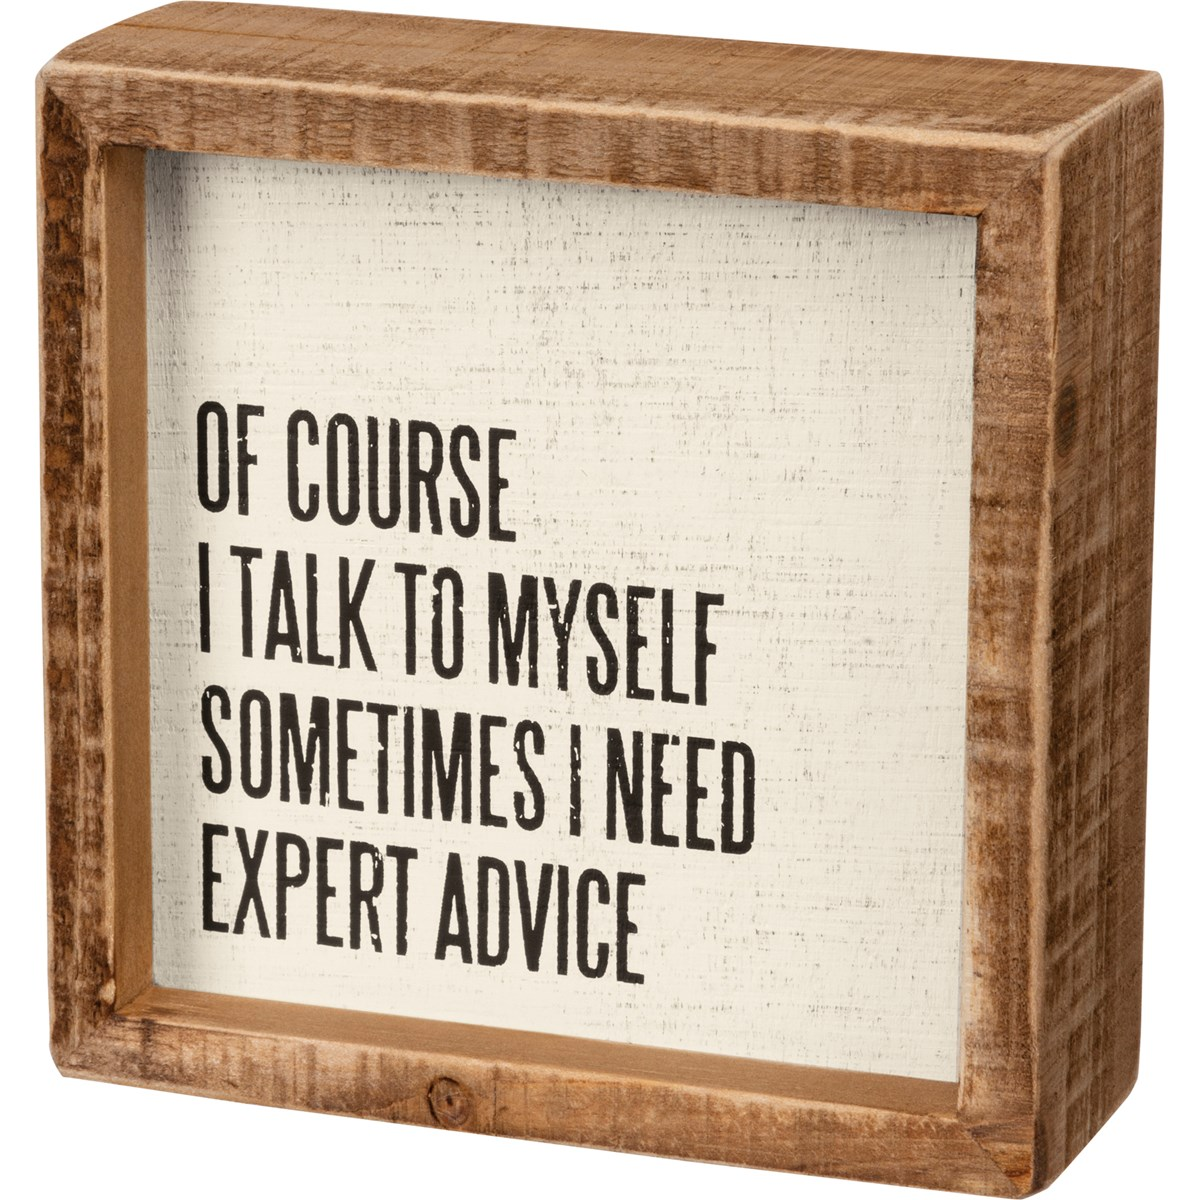 "Inset Box Sign - Sometimes I Need Expert Advice - 5"" x 5"" x 1.75"" - Wood"